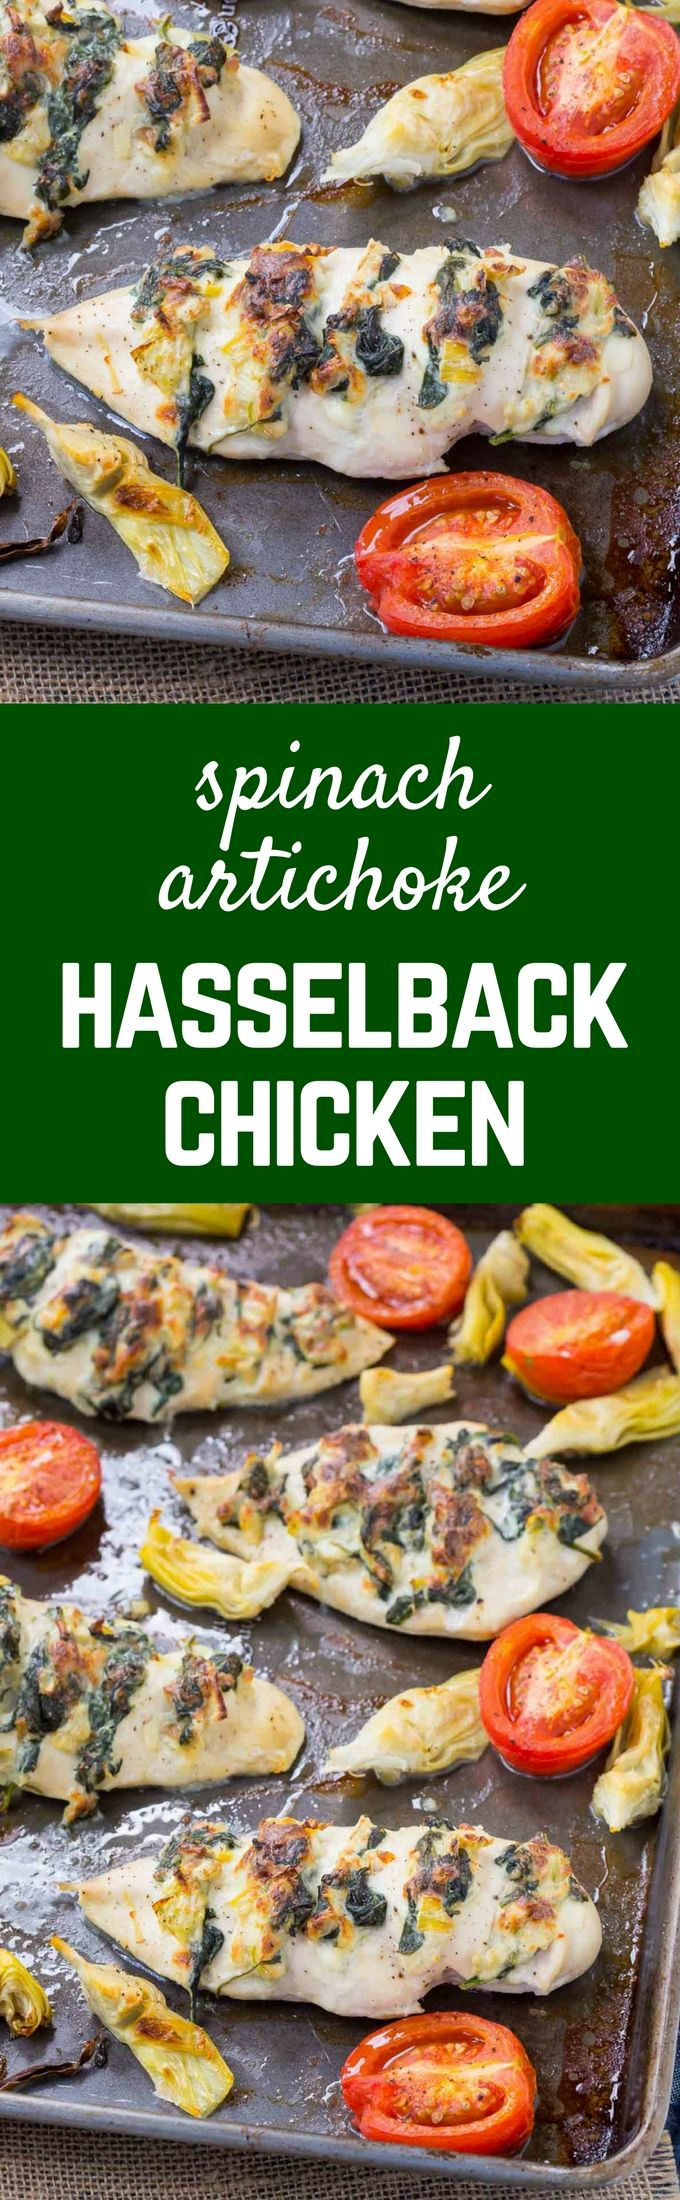 Hasselback Chicken with Spinach and Artichoke - Sheet pan (VIDEO)